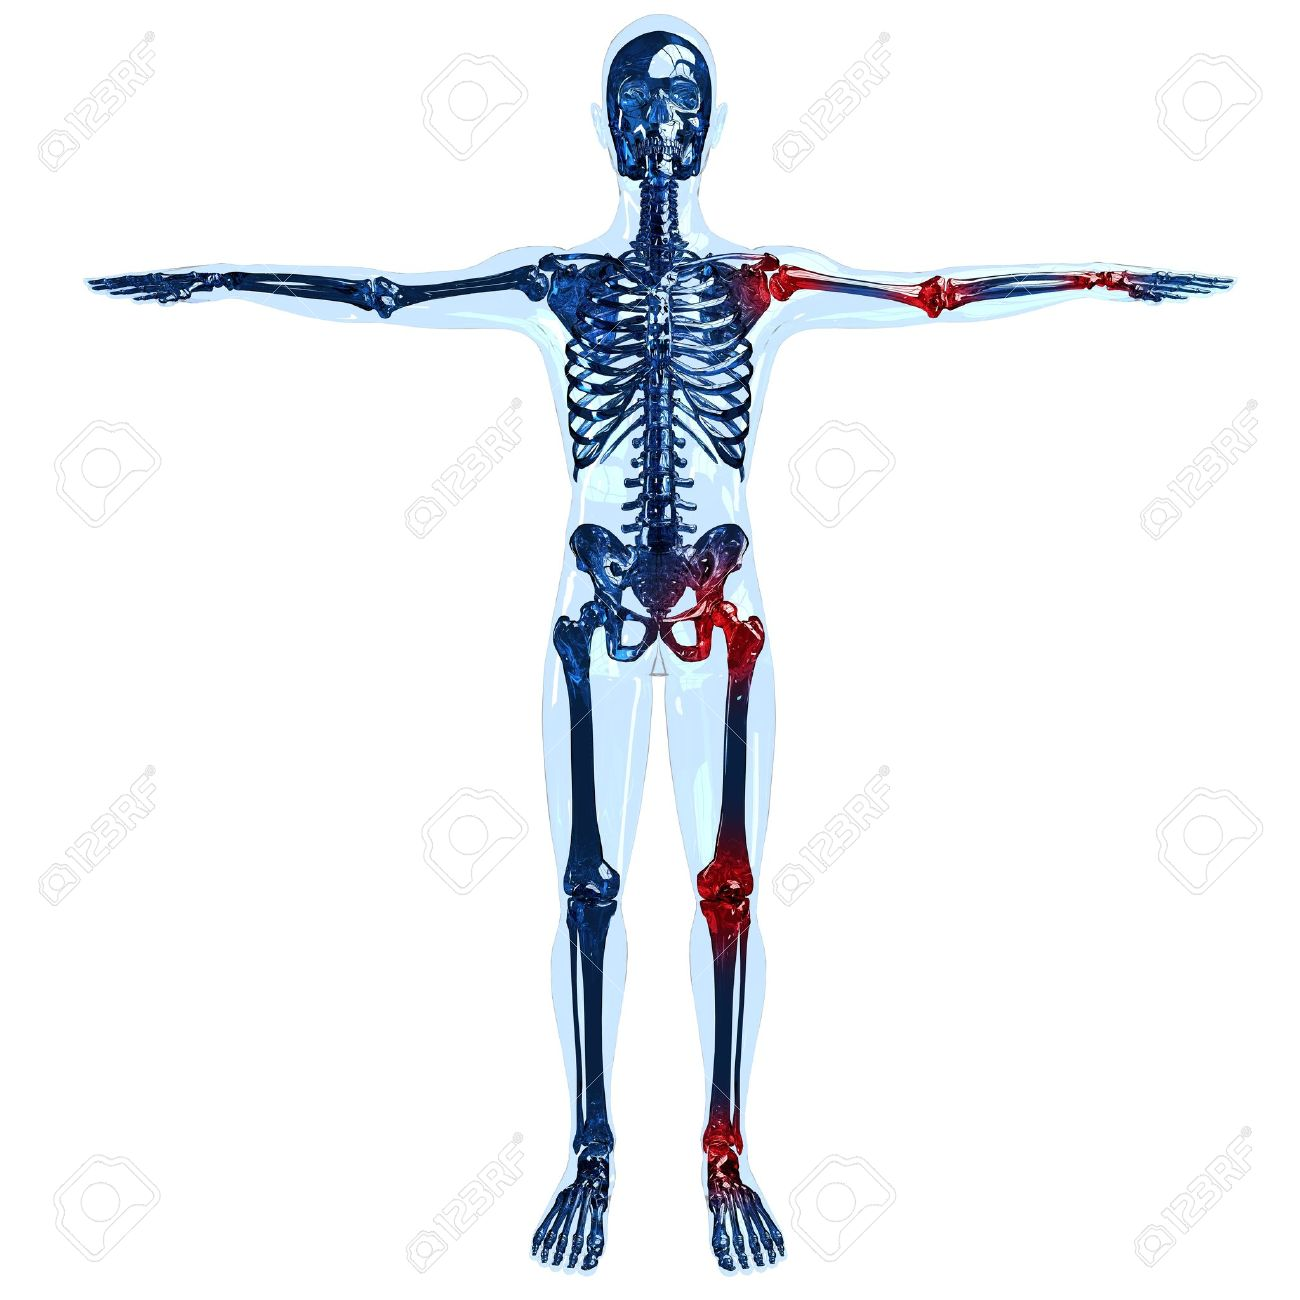 Full Human Skeleton And Transparent Body Illustration In 3d With